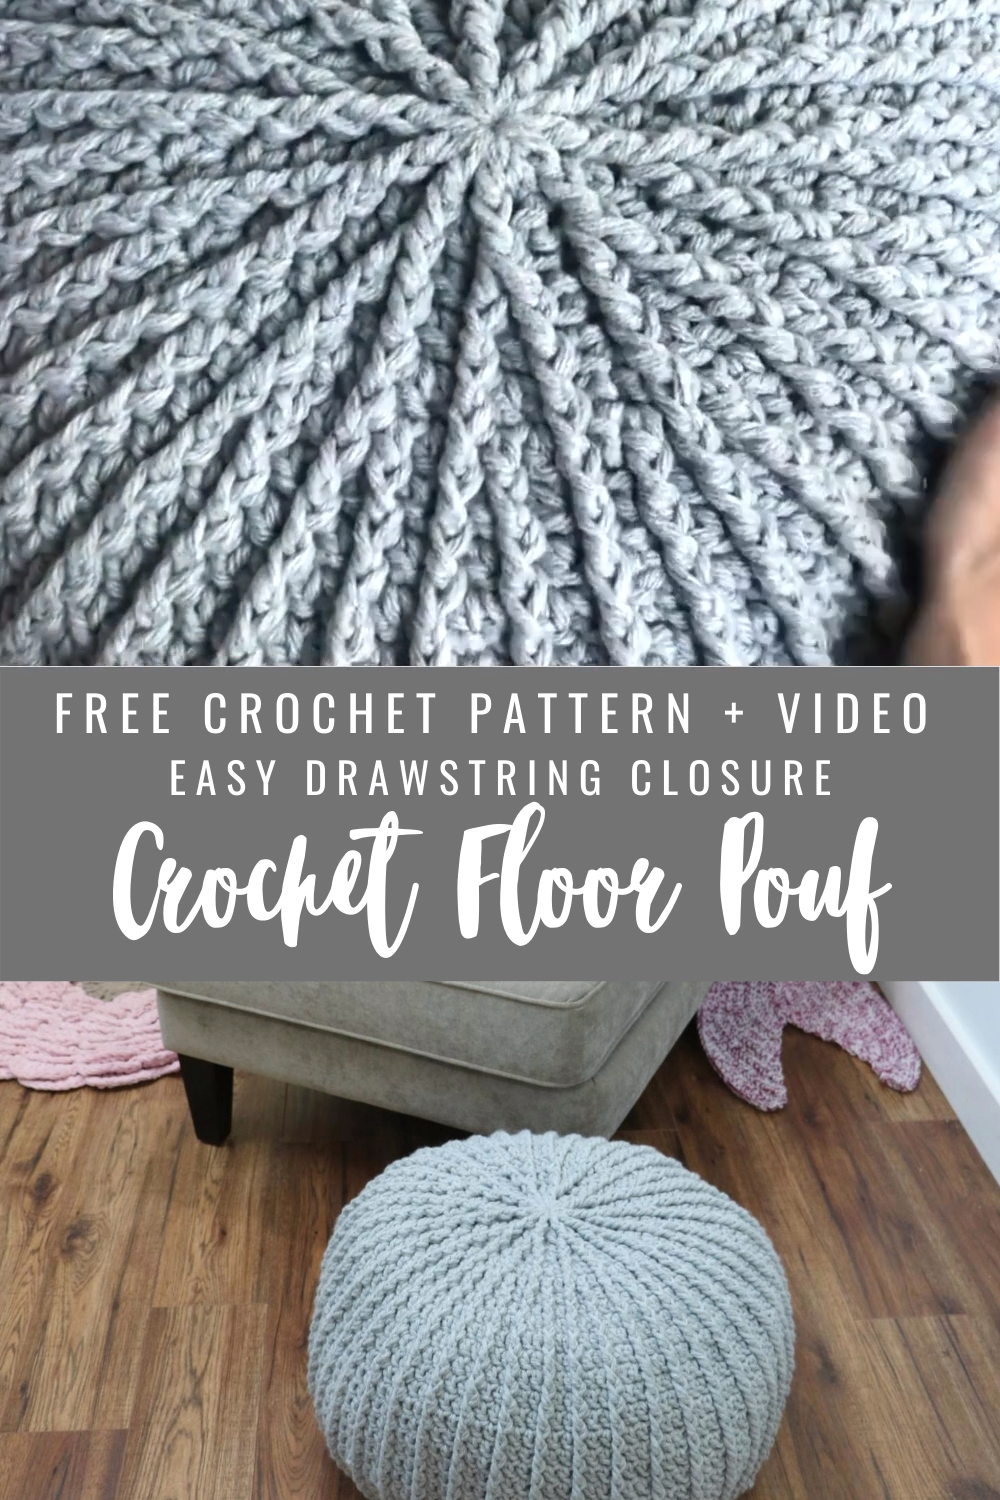 Photo of Free Crochet Floor Pouf